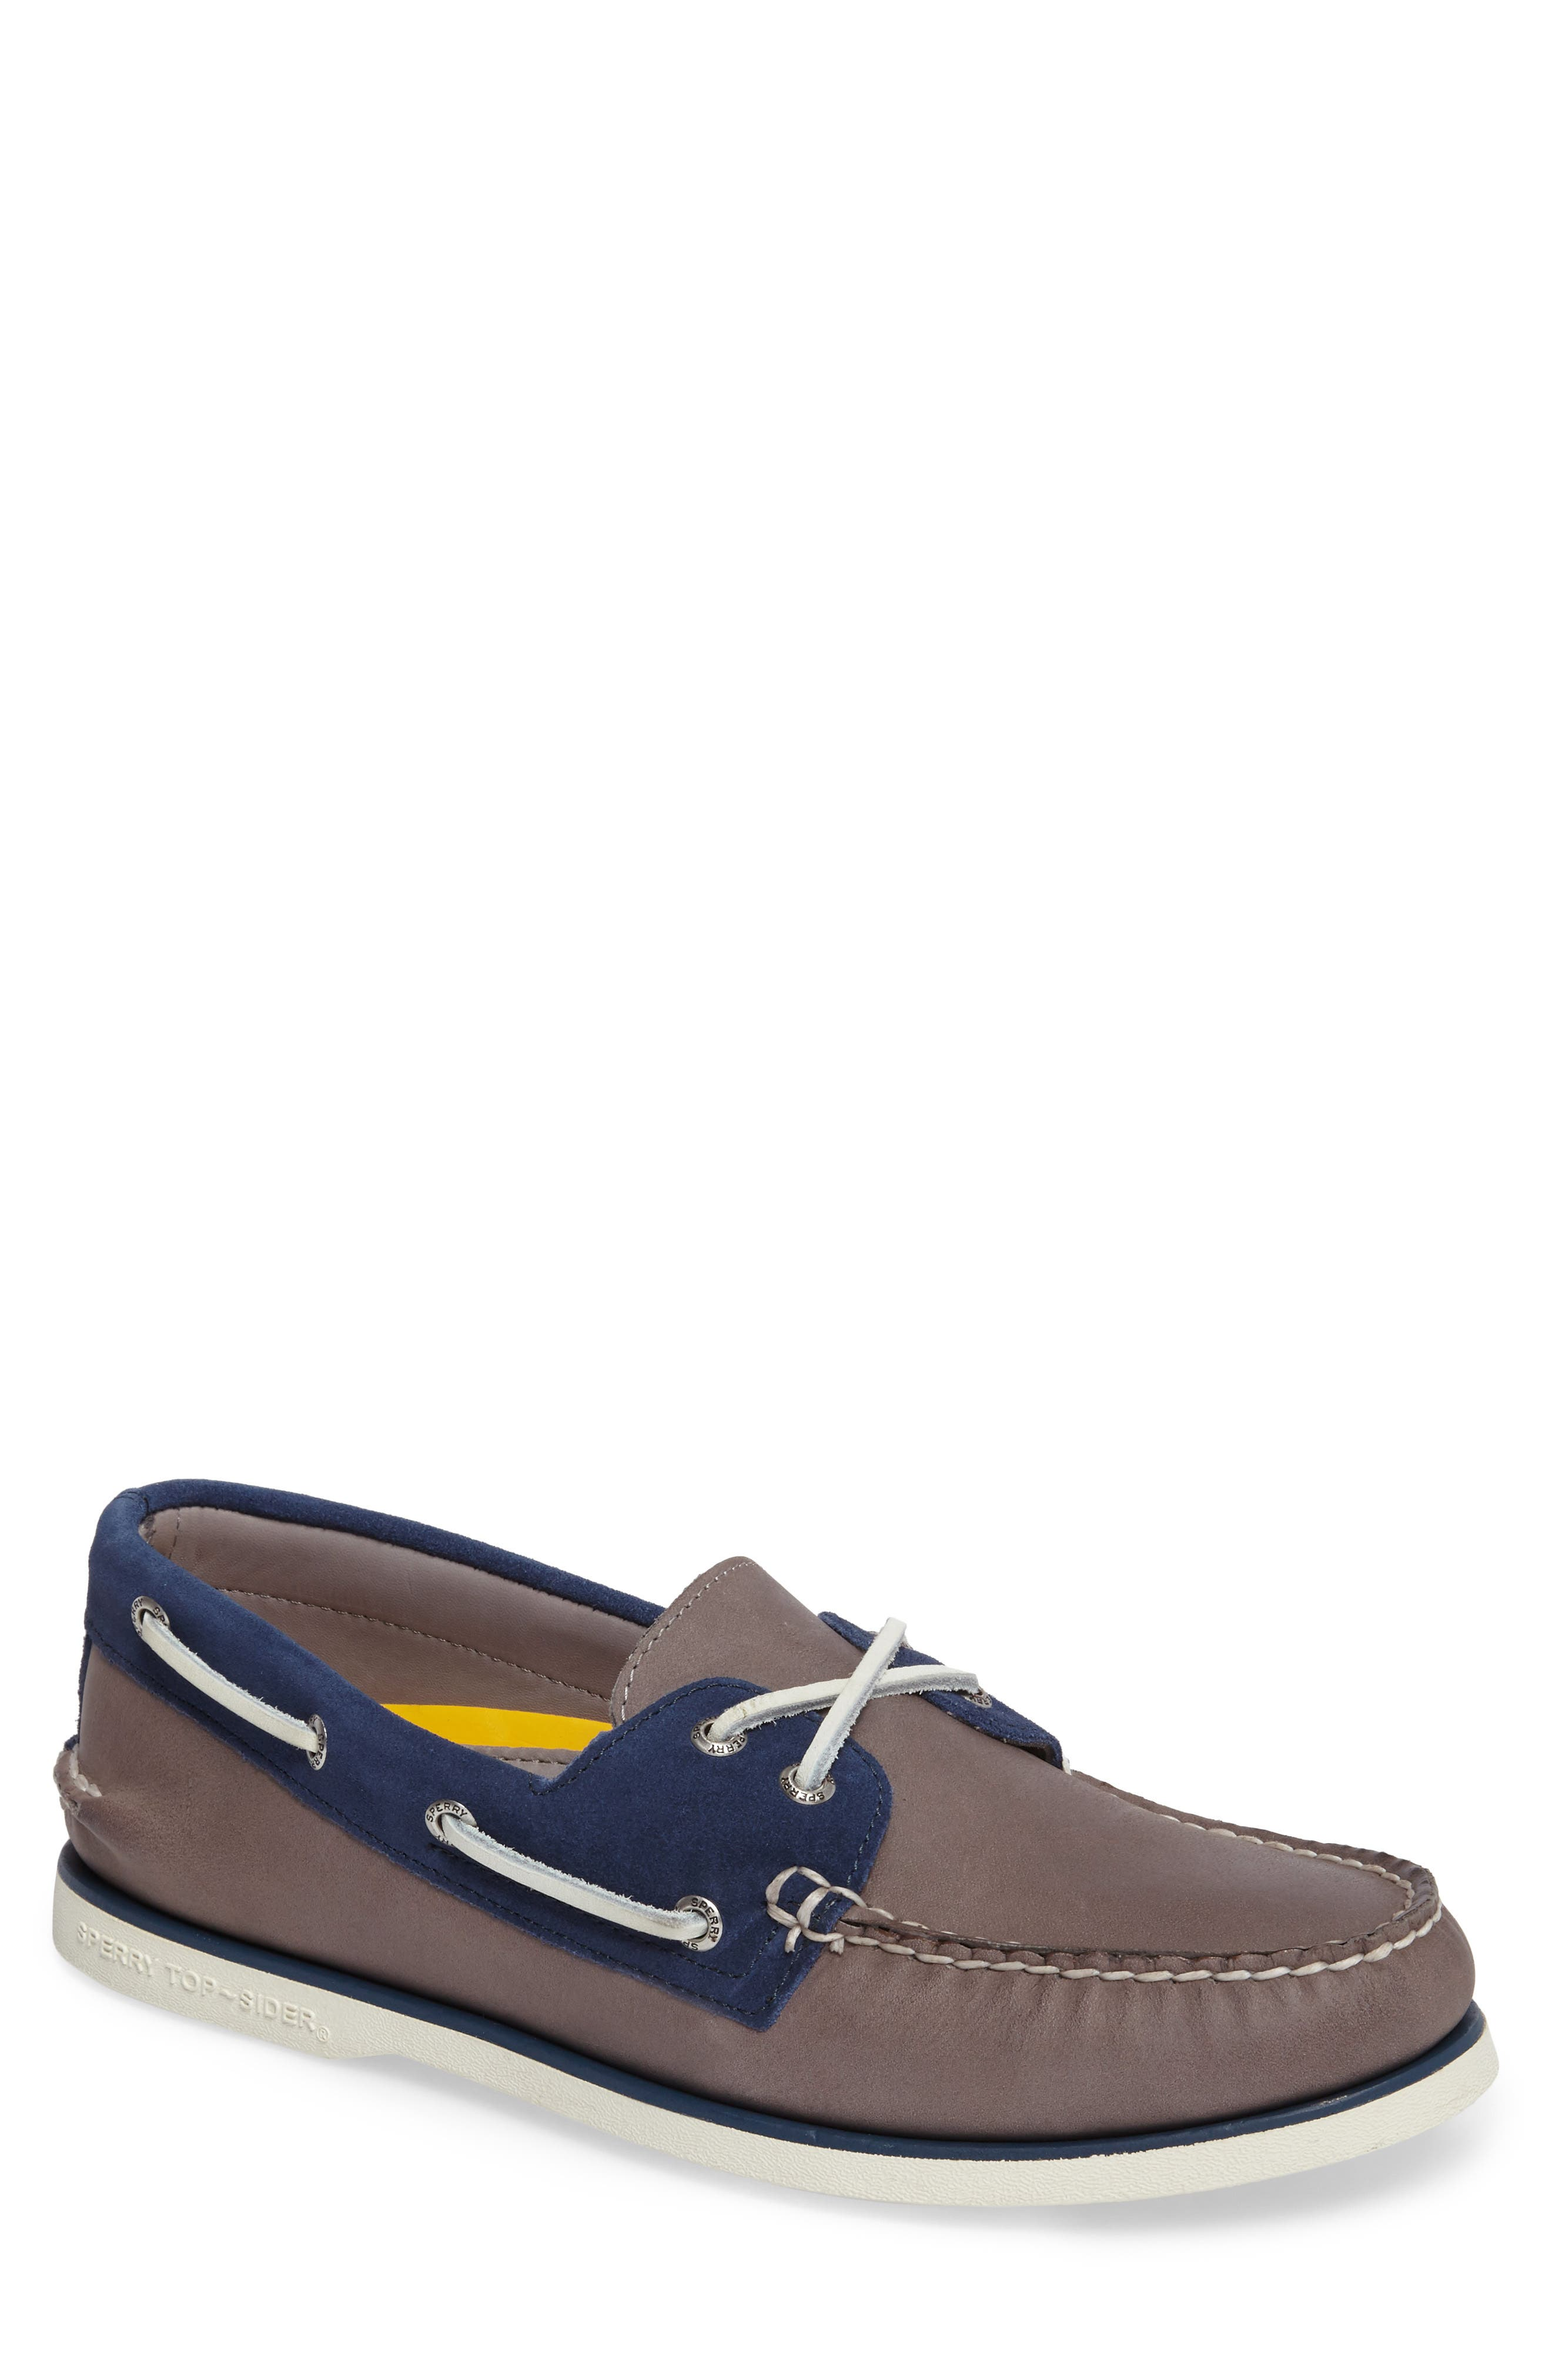 Gold Cup Authentic Original Boat Shoe,                             Main thumbnail 1, color,                             Grey/ Blue Leather